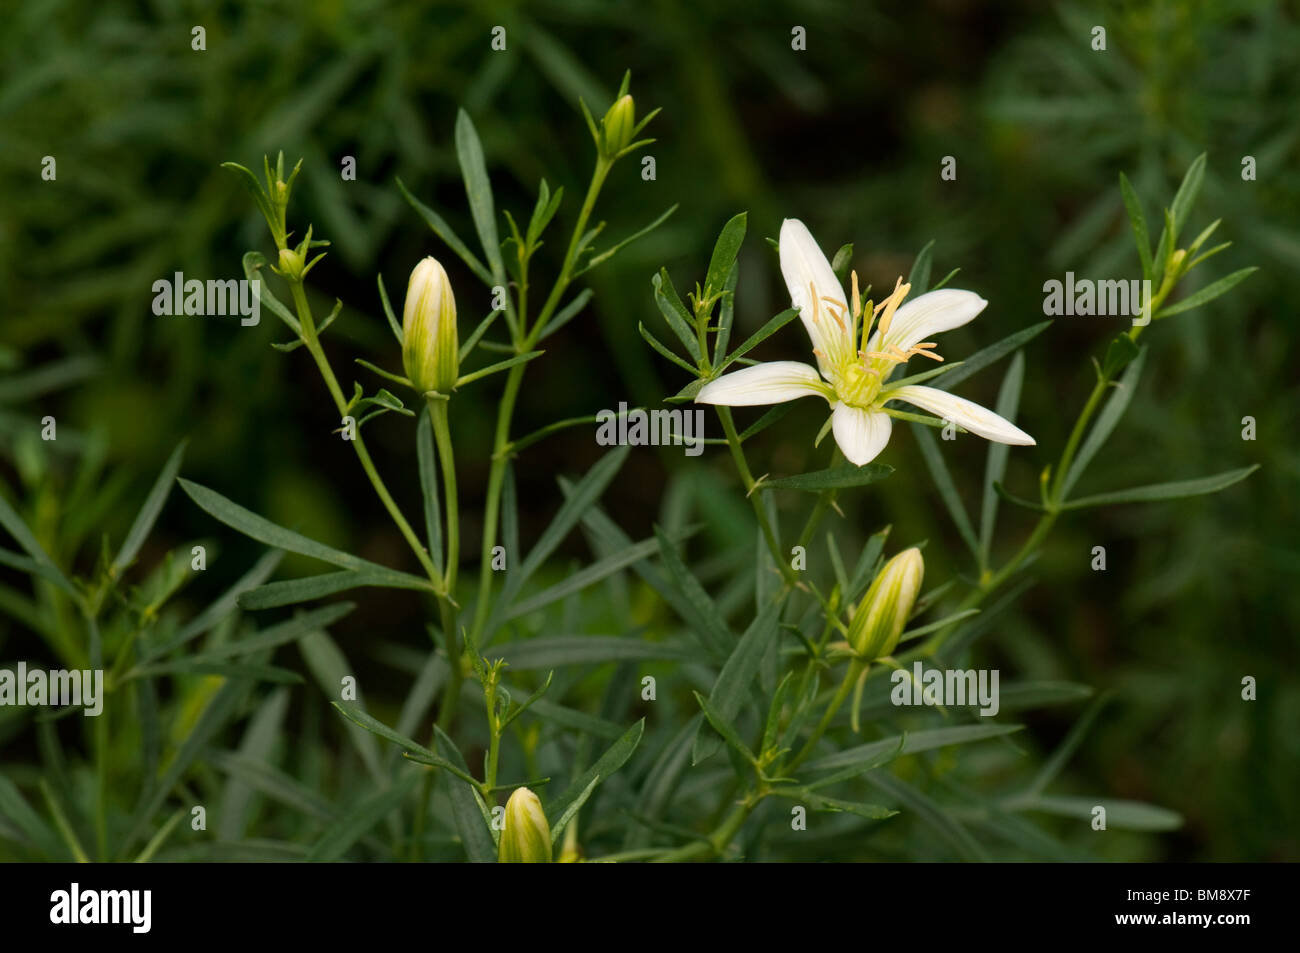 Syrian Rue Stock Photos & Syrian Rue Stock Images - Alamy